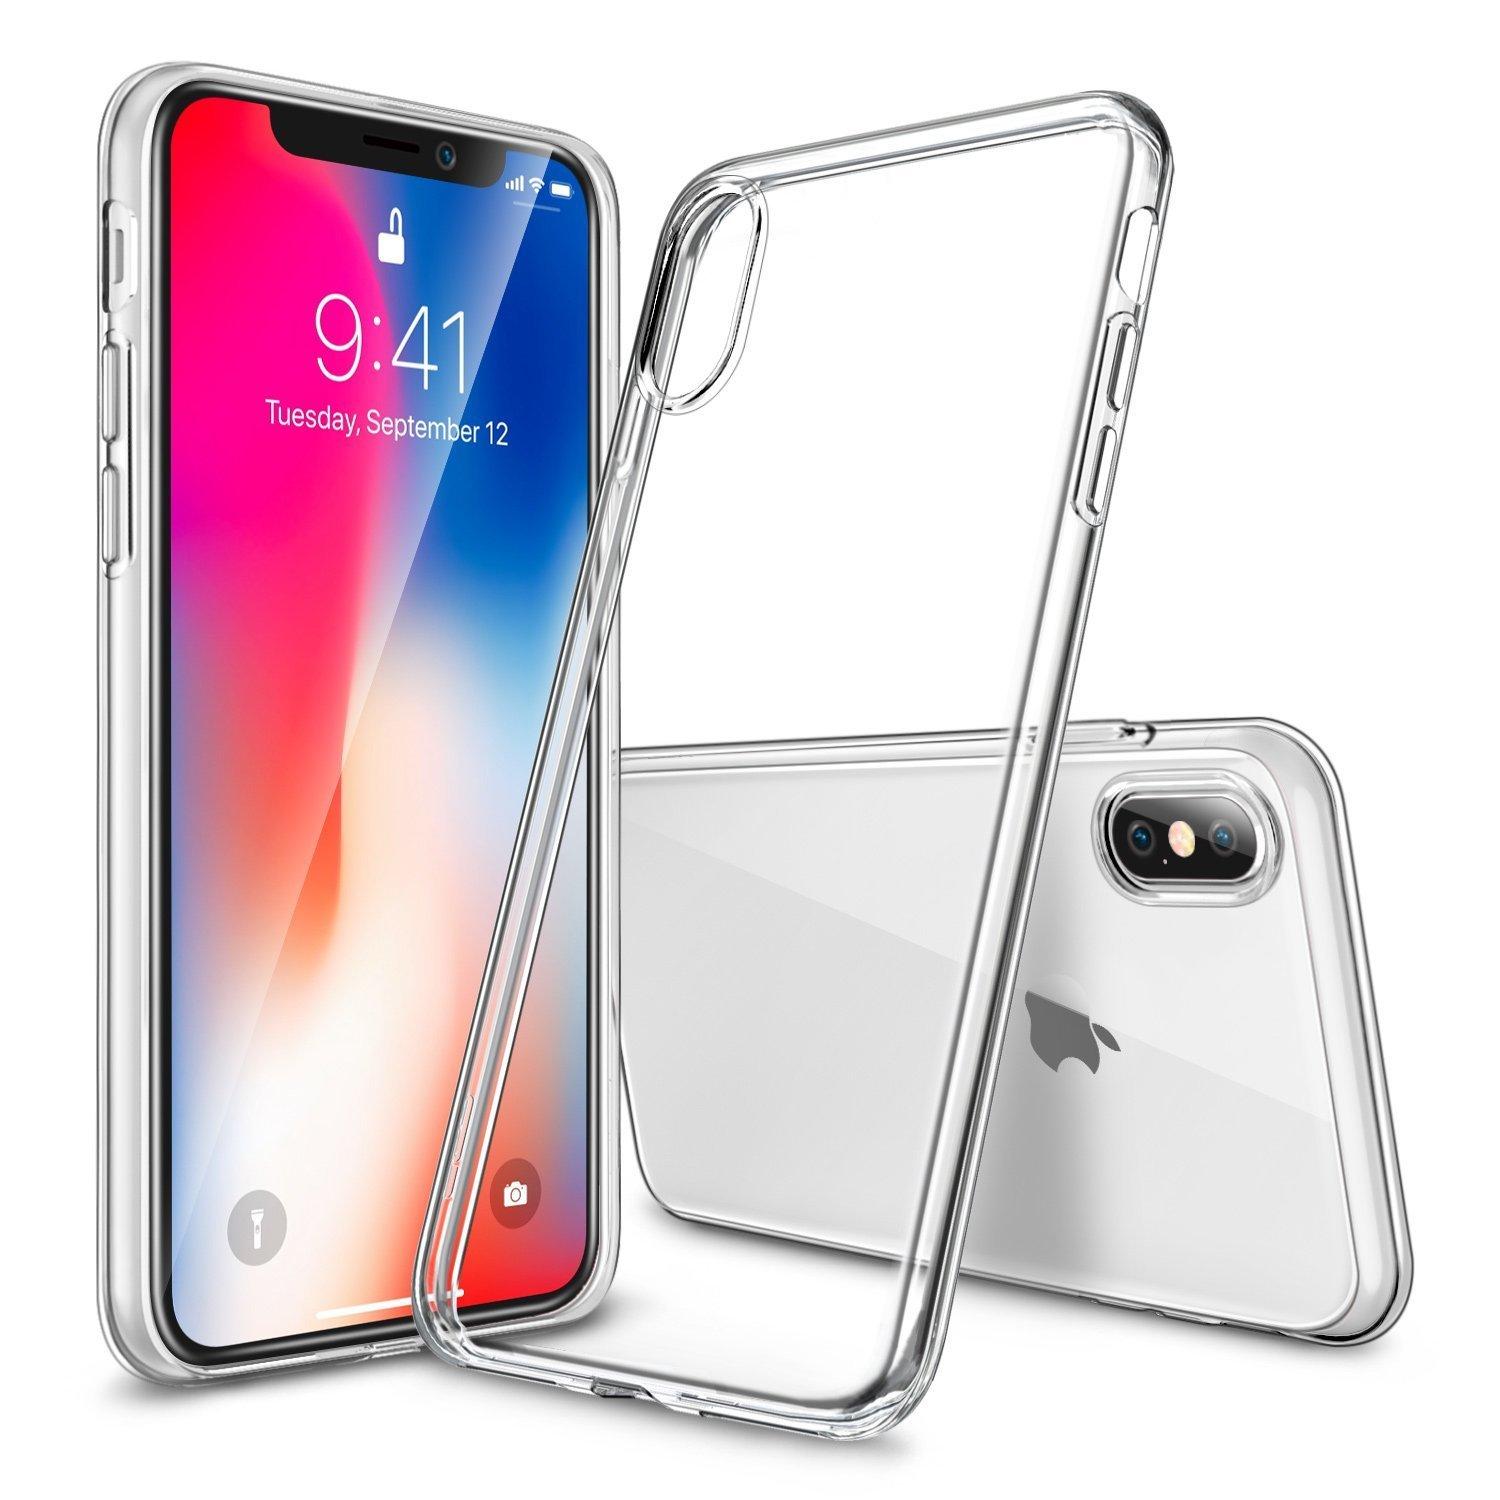 custodia i iphone x